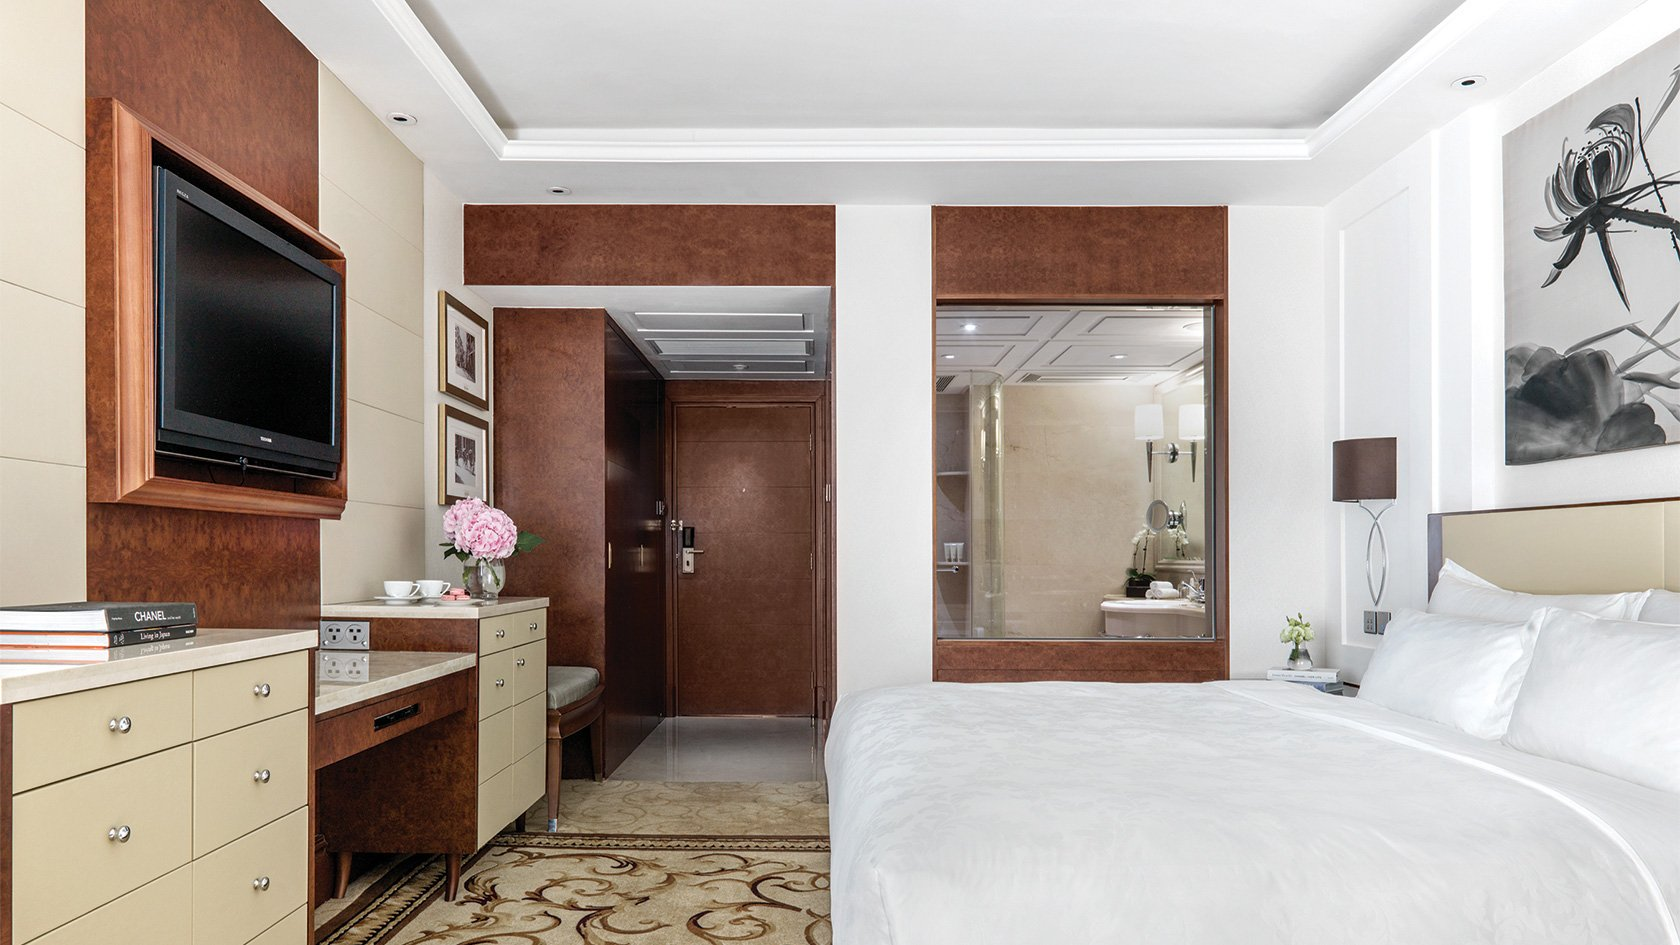 香港朗廷酒店 The Langham, Hong Kong-內園景高級客房 10h | 08:00-18:00